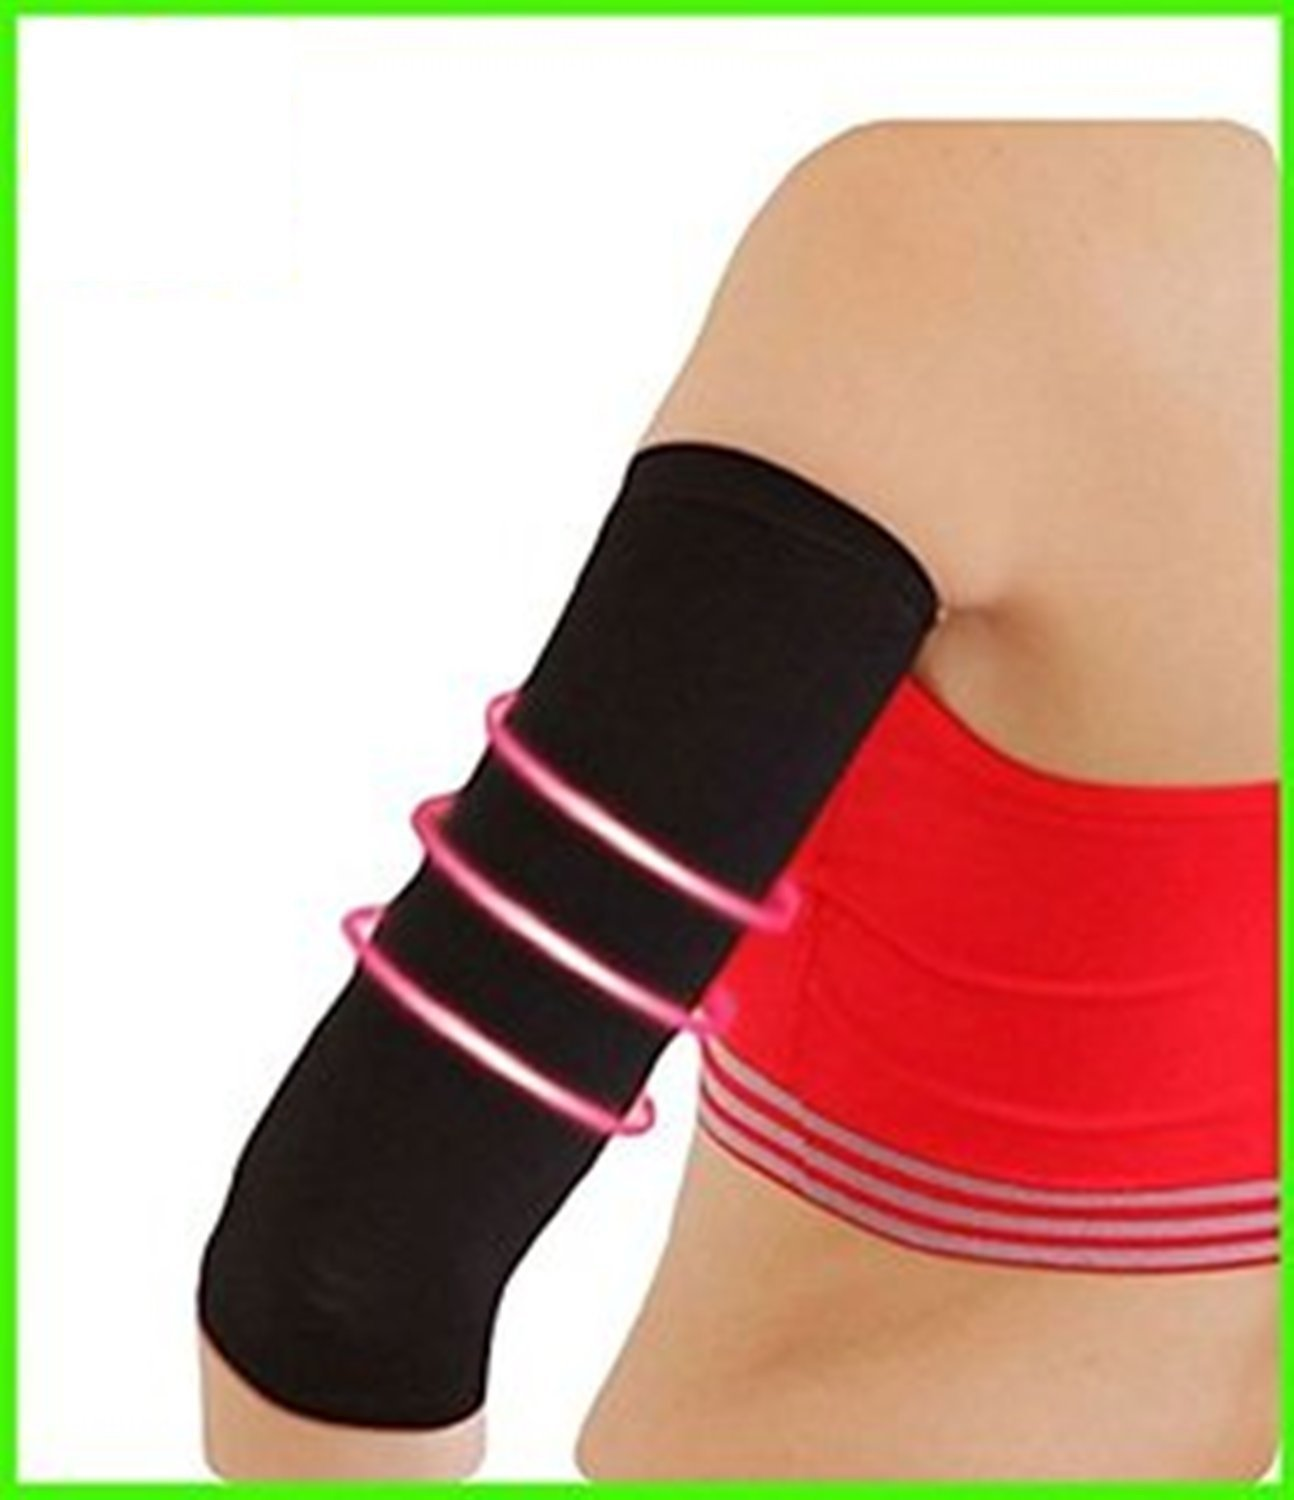 2b40565130043 Get Quotations · Slimming Sleeves Neoprene Body Shaper Arm Sleeve- Sauna  and Workout Arm Sleeve- Neotex Womens